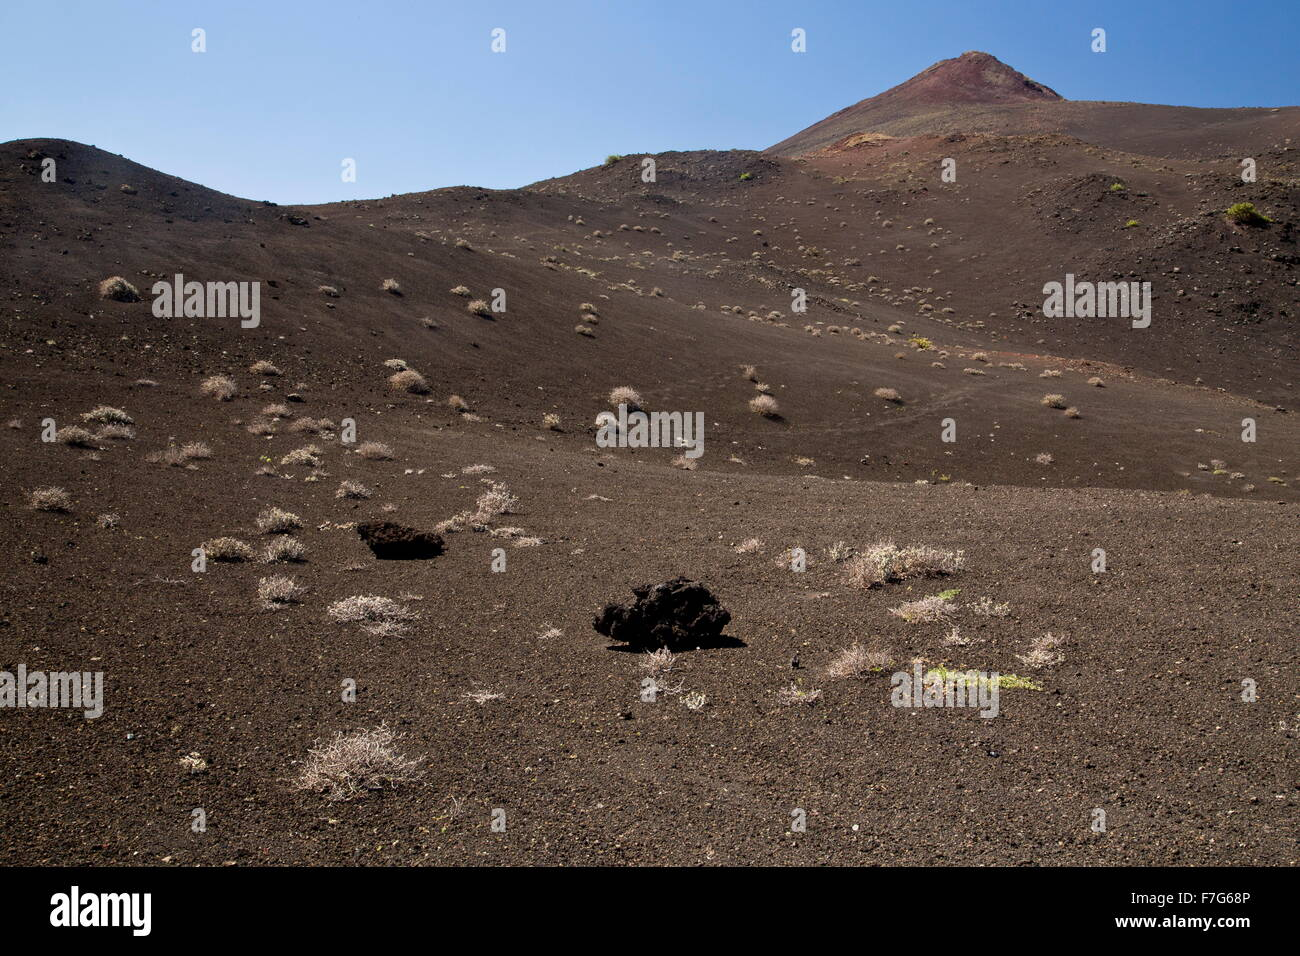 Stark volcanic landscape in the Timanfaya National Park,  central Lanzarote, with early colonising plants. - Stock Image